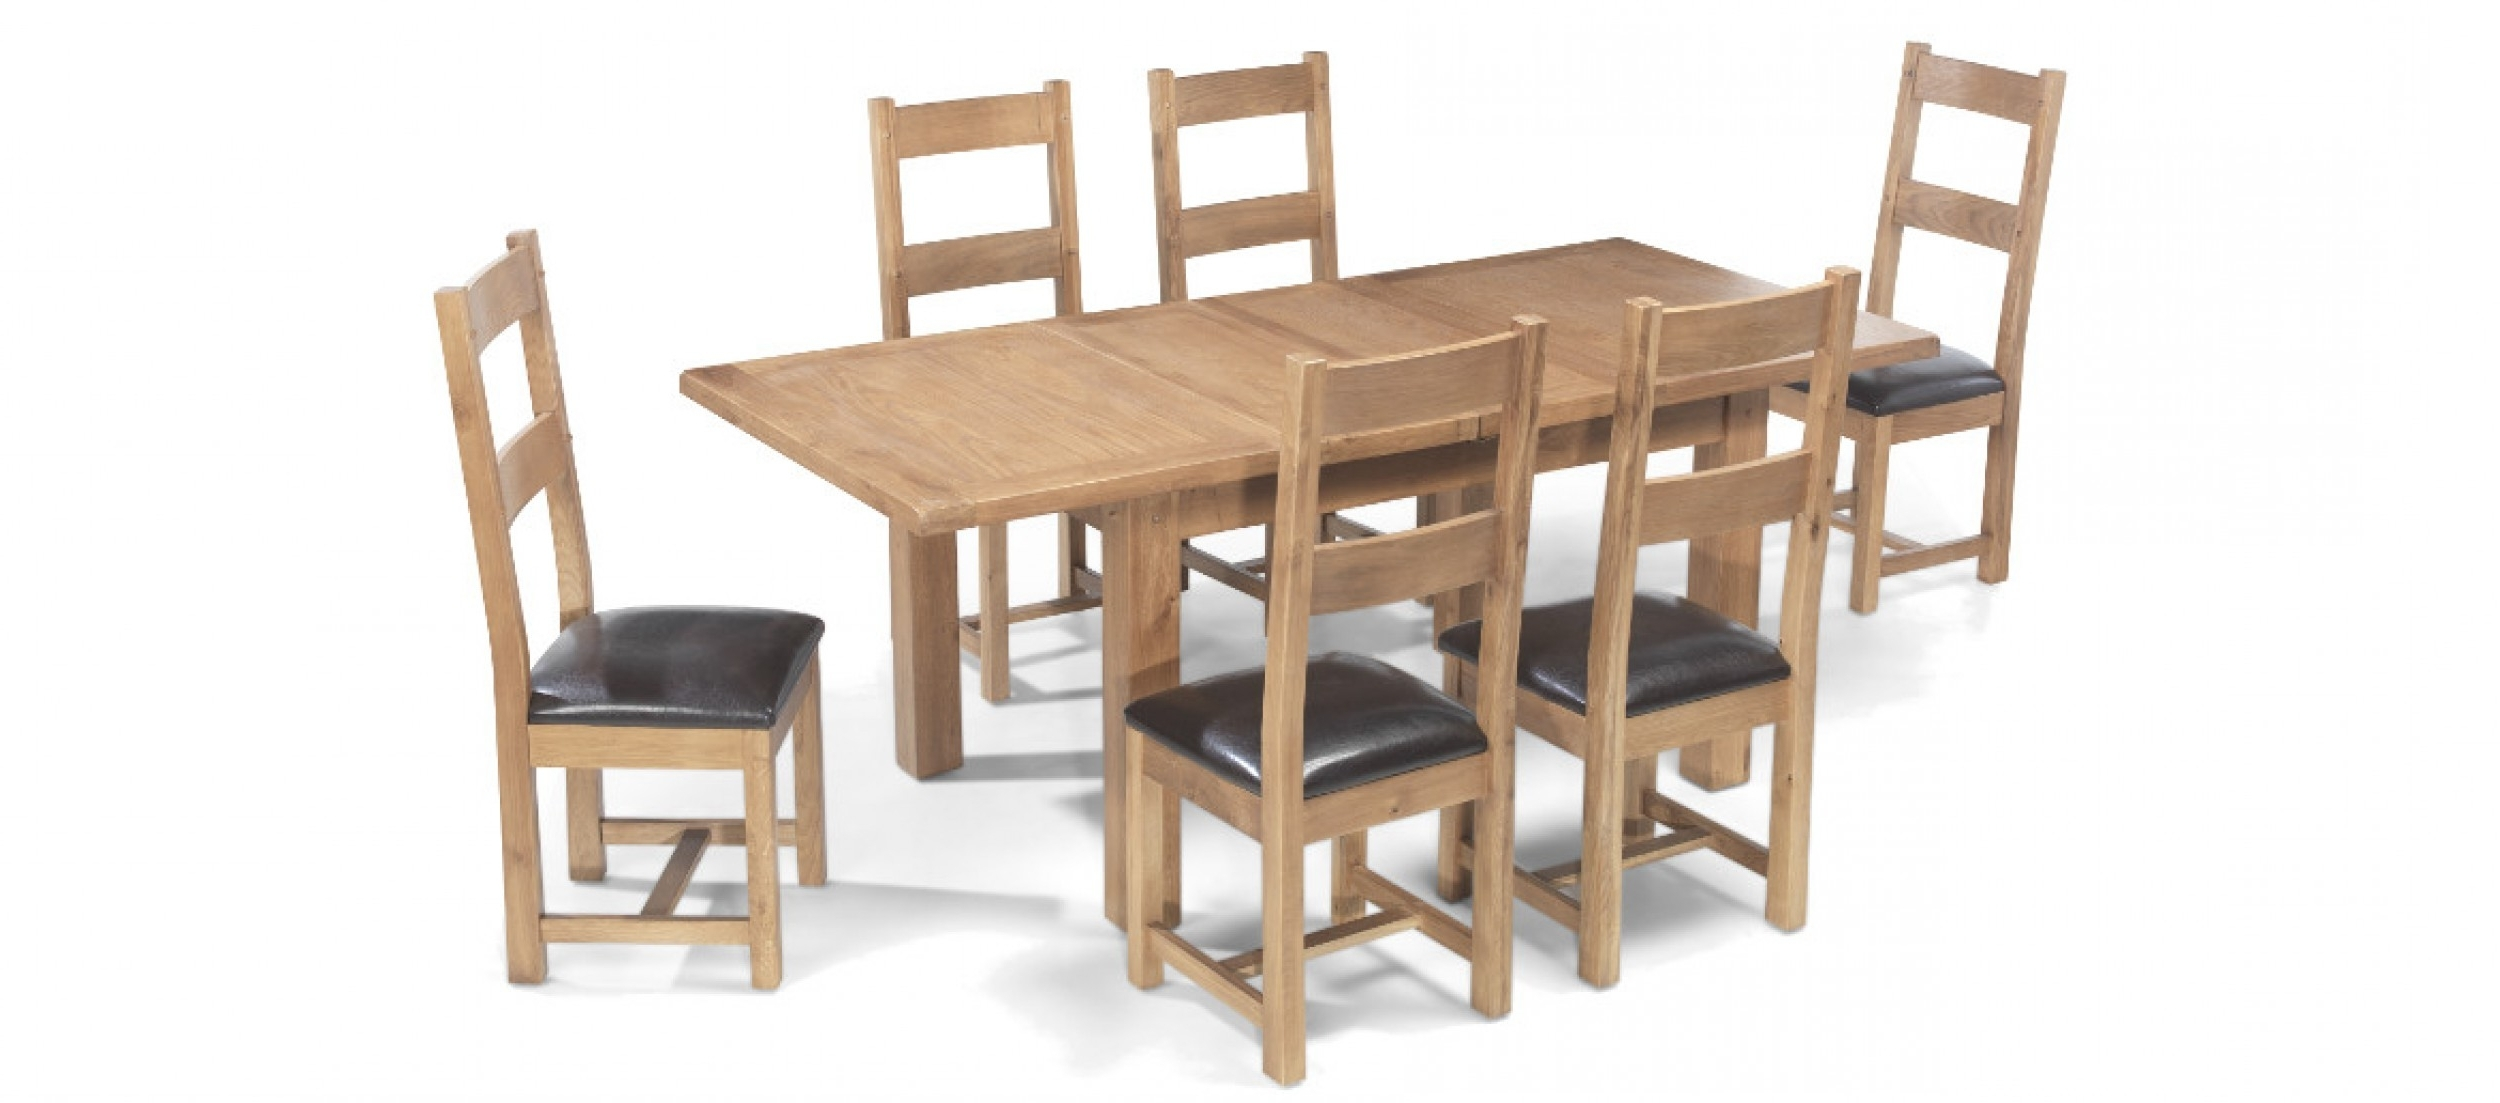 Most Recent Extending Dining Tables With 6 Chairs Intended For Rustic Oak 132 198 Cm Extending Dining Table And 6 Chairs (View 4 of 25)